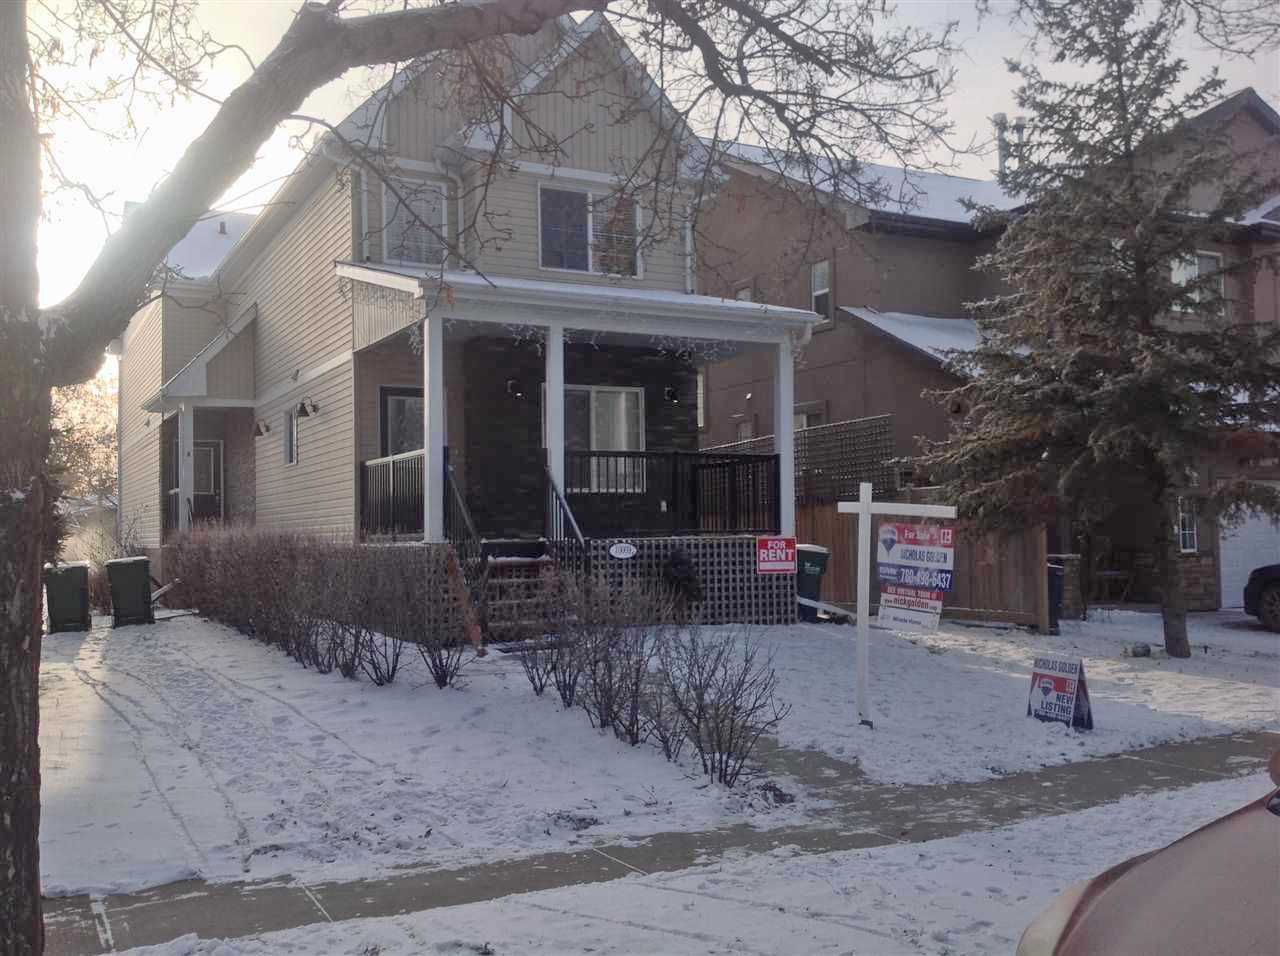 This quality built 2 storey 1/2 duplex condominium is in a great location.  This home has 4 bedrooms including huge master suite,. 2 full bathrooms and 1 1/2 bath.  There is 1280 sq. ft. above plus full finished basement resulting in about 1900 sq. ft of developed living space.  Beautiful maple cabinets thru-out featuring stainless steel appliances.  High quality laminate flooring and  heated tile areas.  The owner wants both units sold together.  Show and sell with confidence.